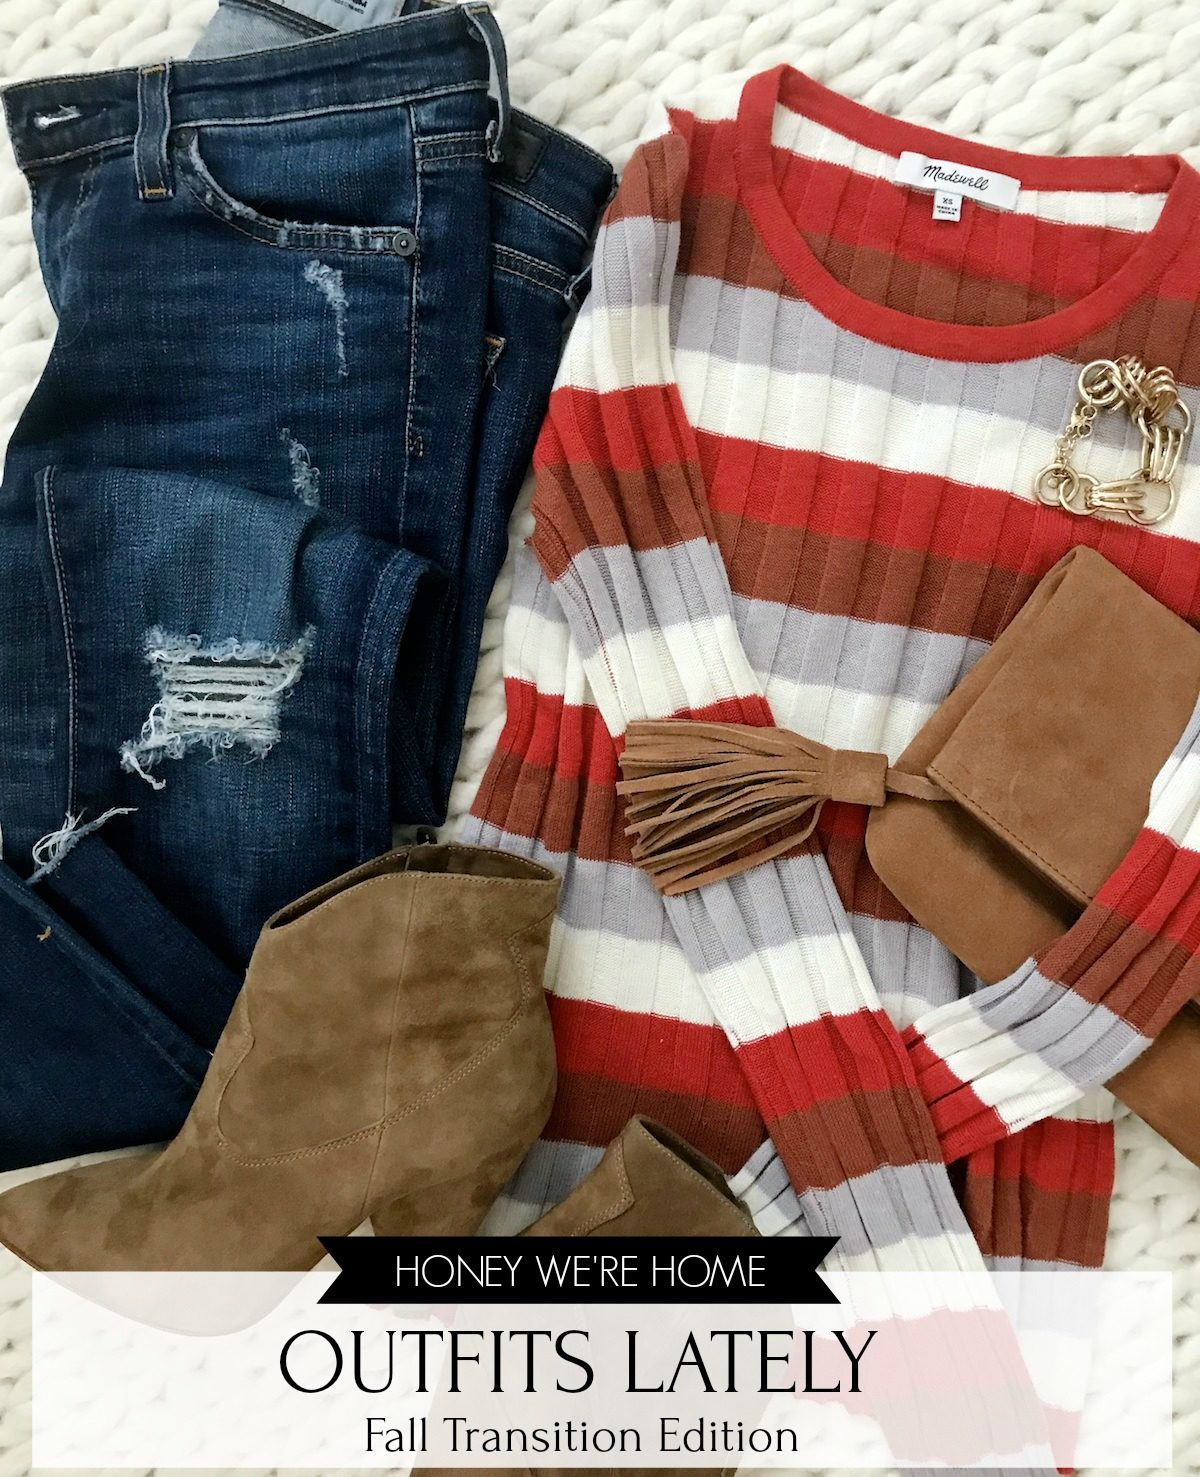 Cute-Fall-Outfit-jeans-and-striped-sweater-1200x1477-2